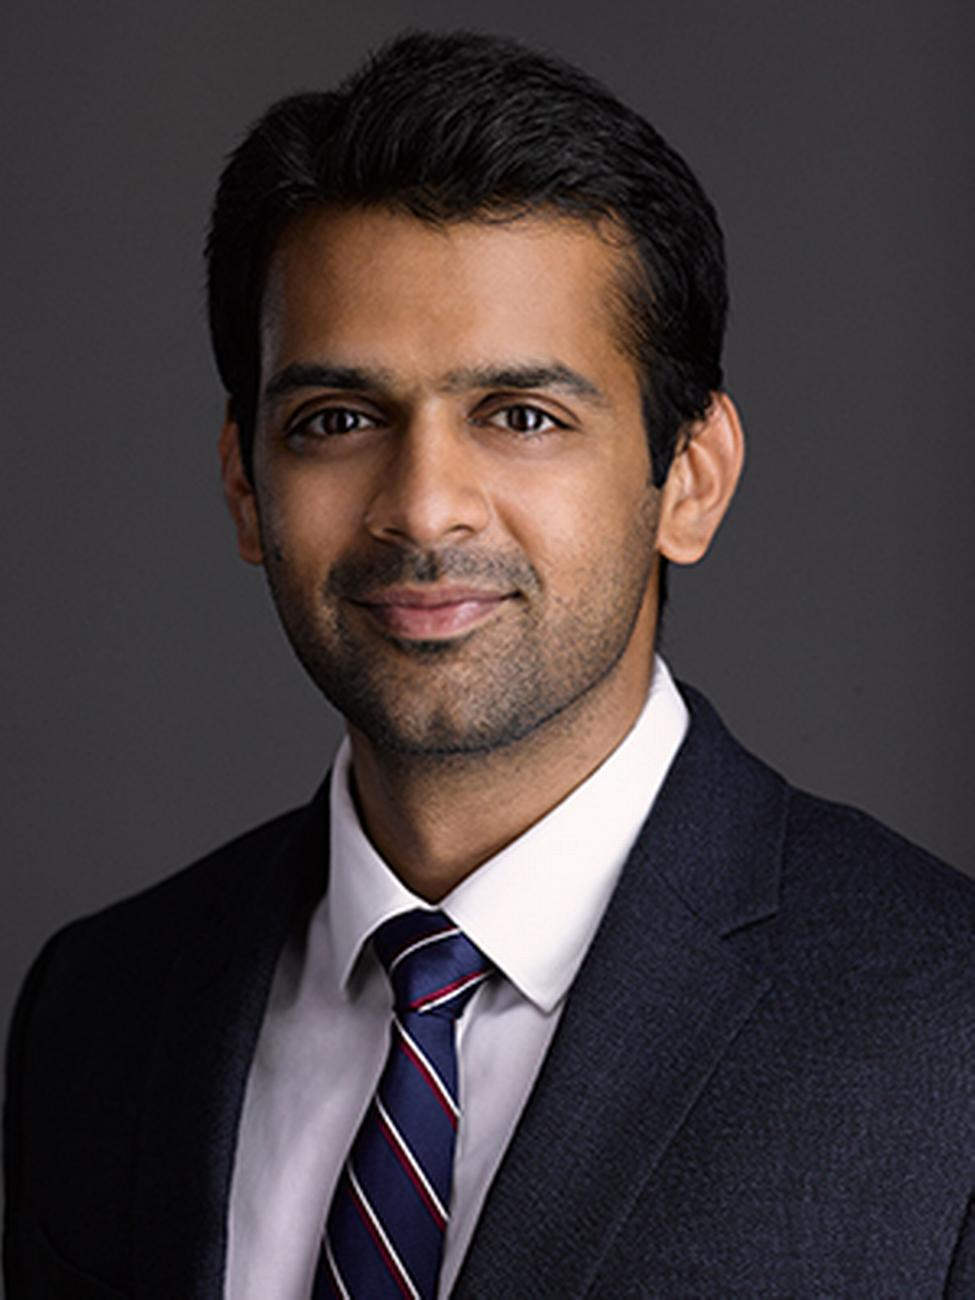 Photo of Ashish Deshmukh, PhD, MPH. Photo credit: UTHealth